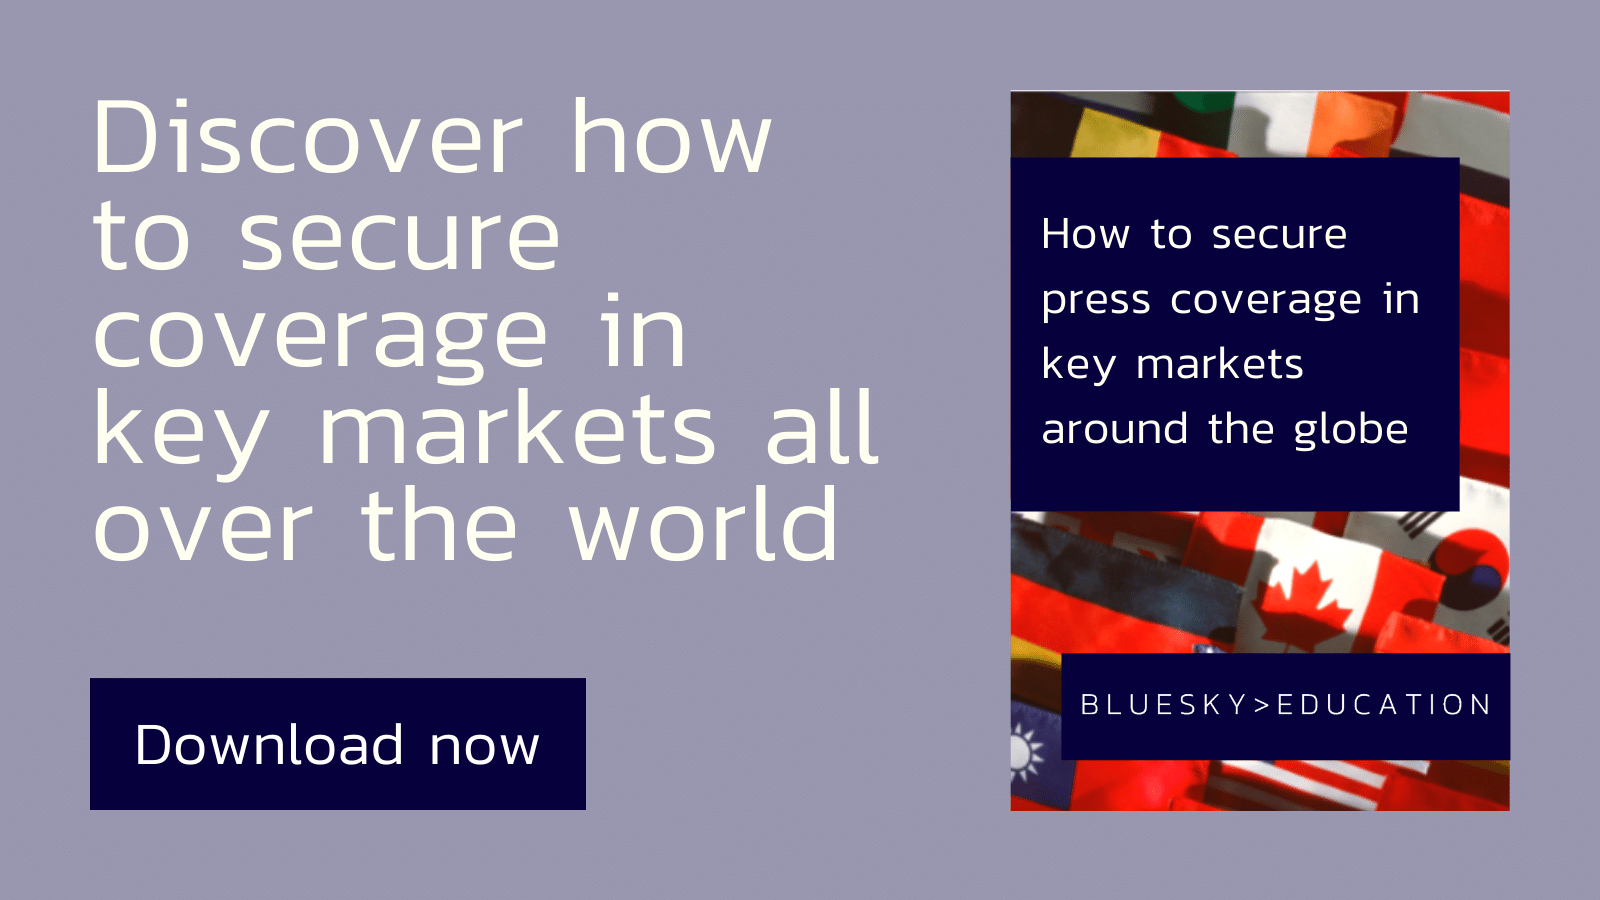 How to secure press coverage in key markets around the world